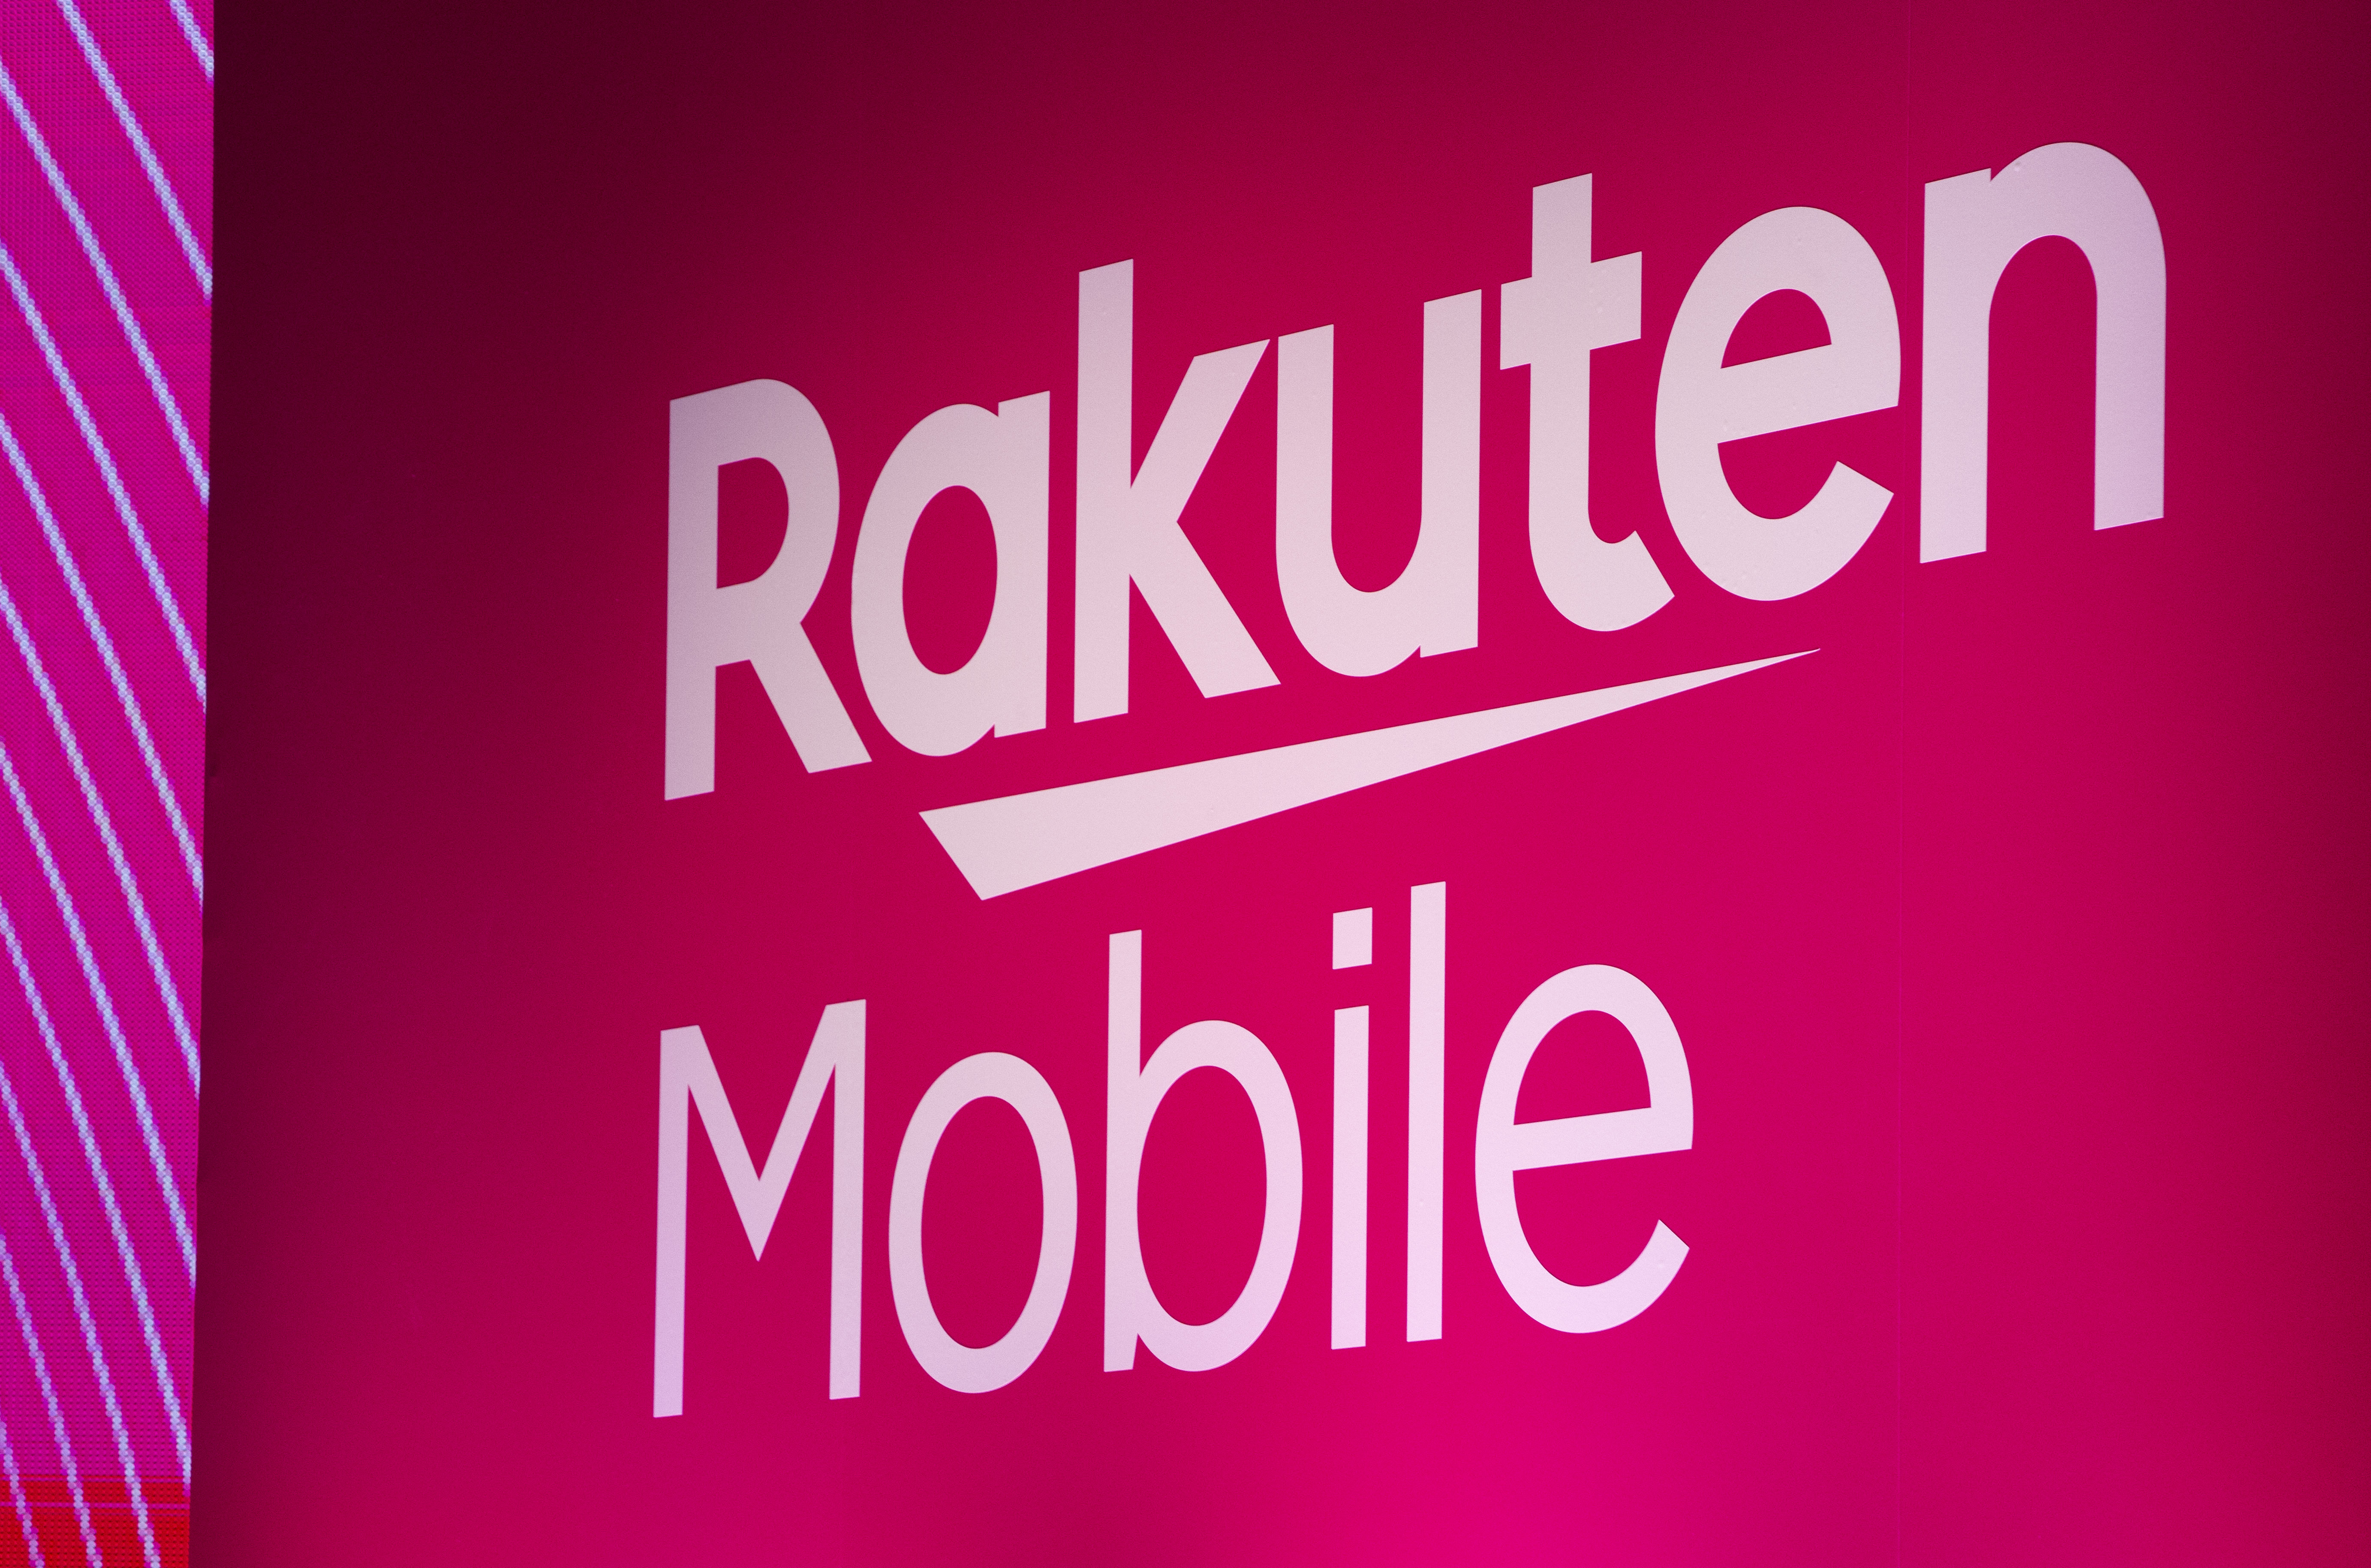 Unlimited rakuten